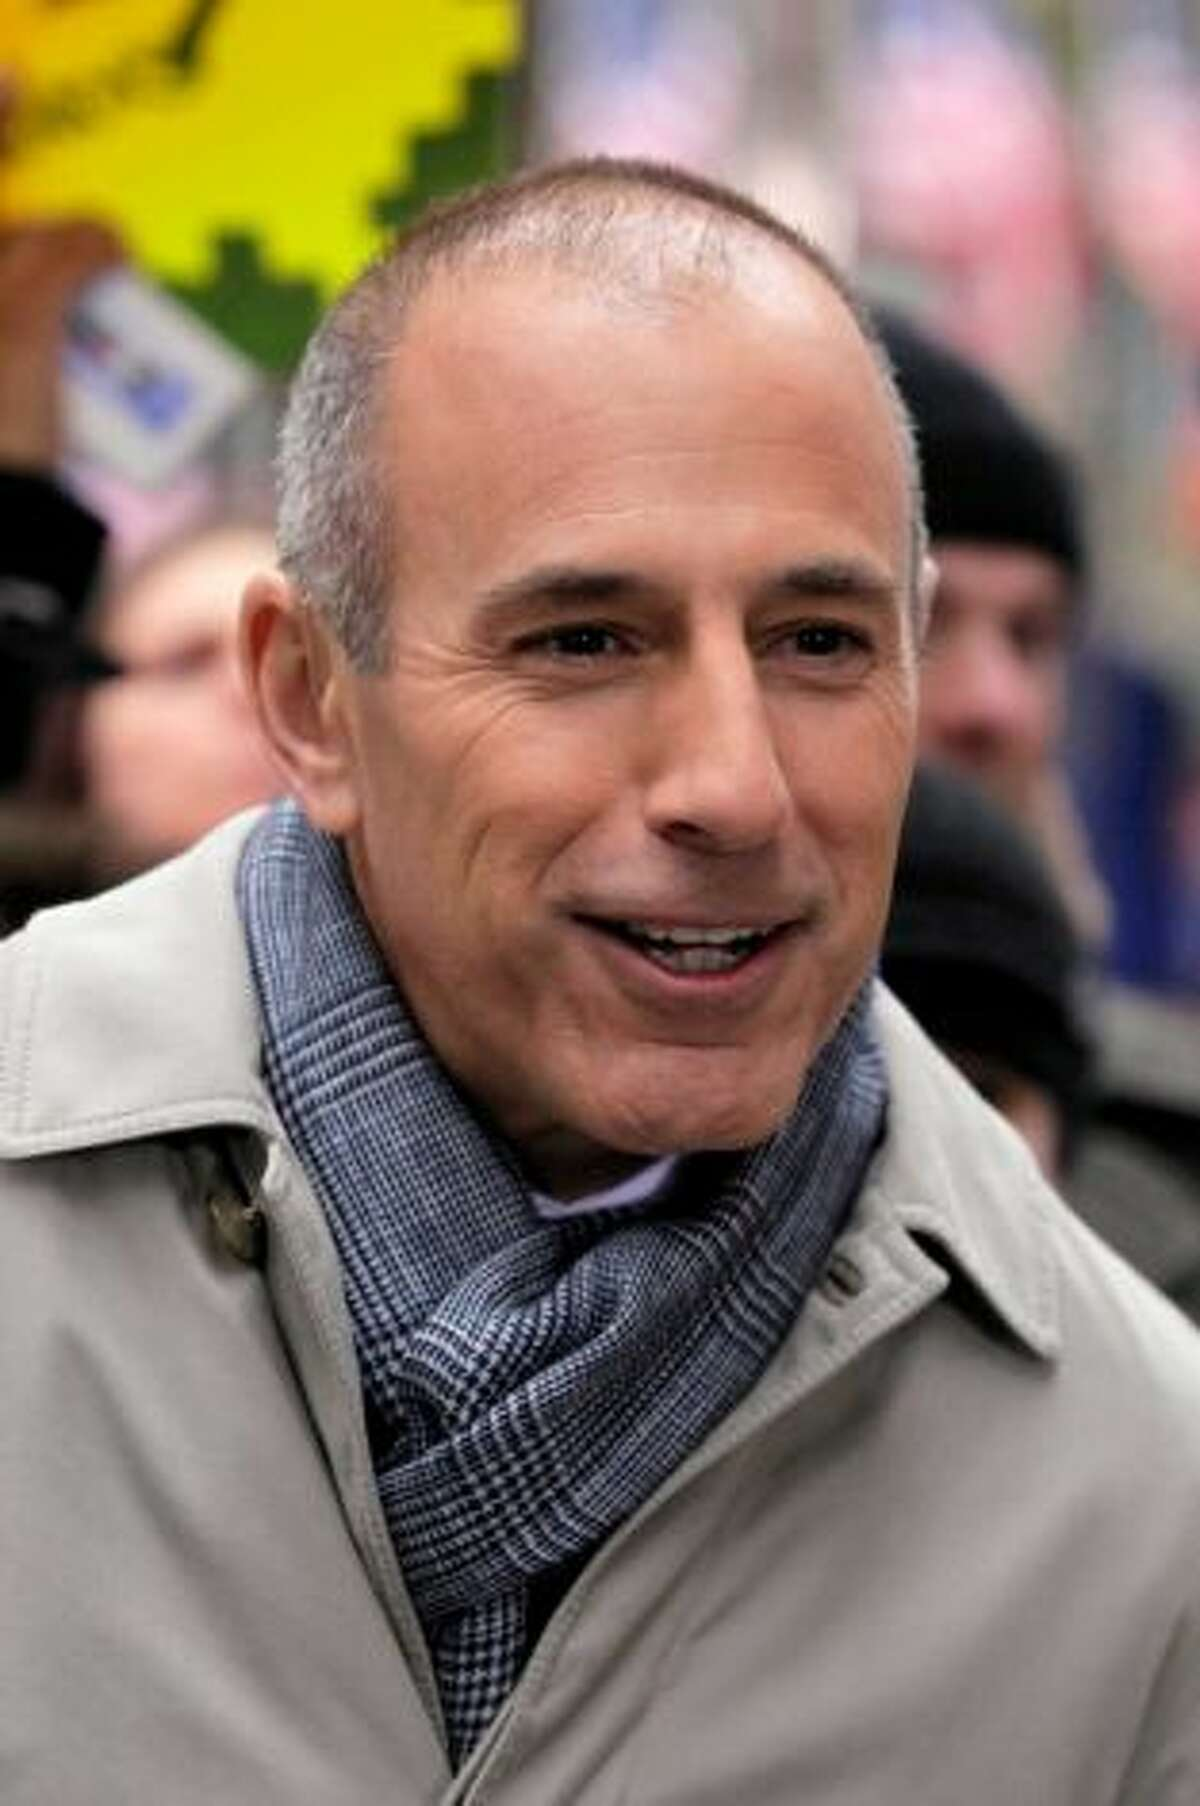 Matt Lauer, Today Show, was fired Wednesday after an allegation of sexual misconduct in the workplace. ((AP Photo/Richard Drew, File) Photo: Richard Drew )